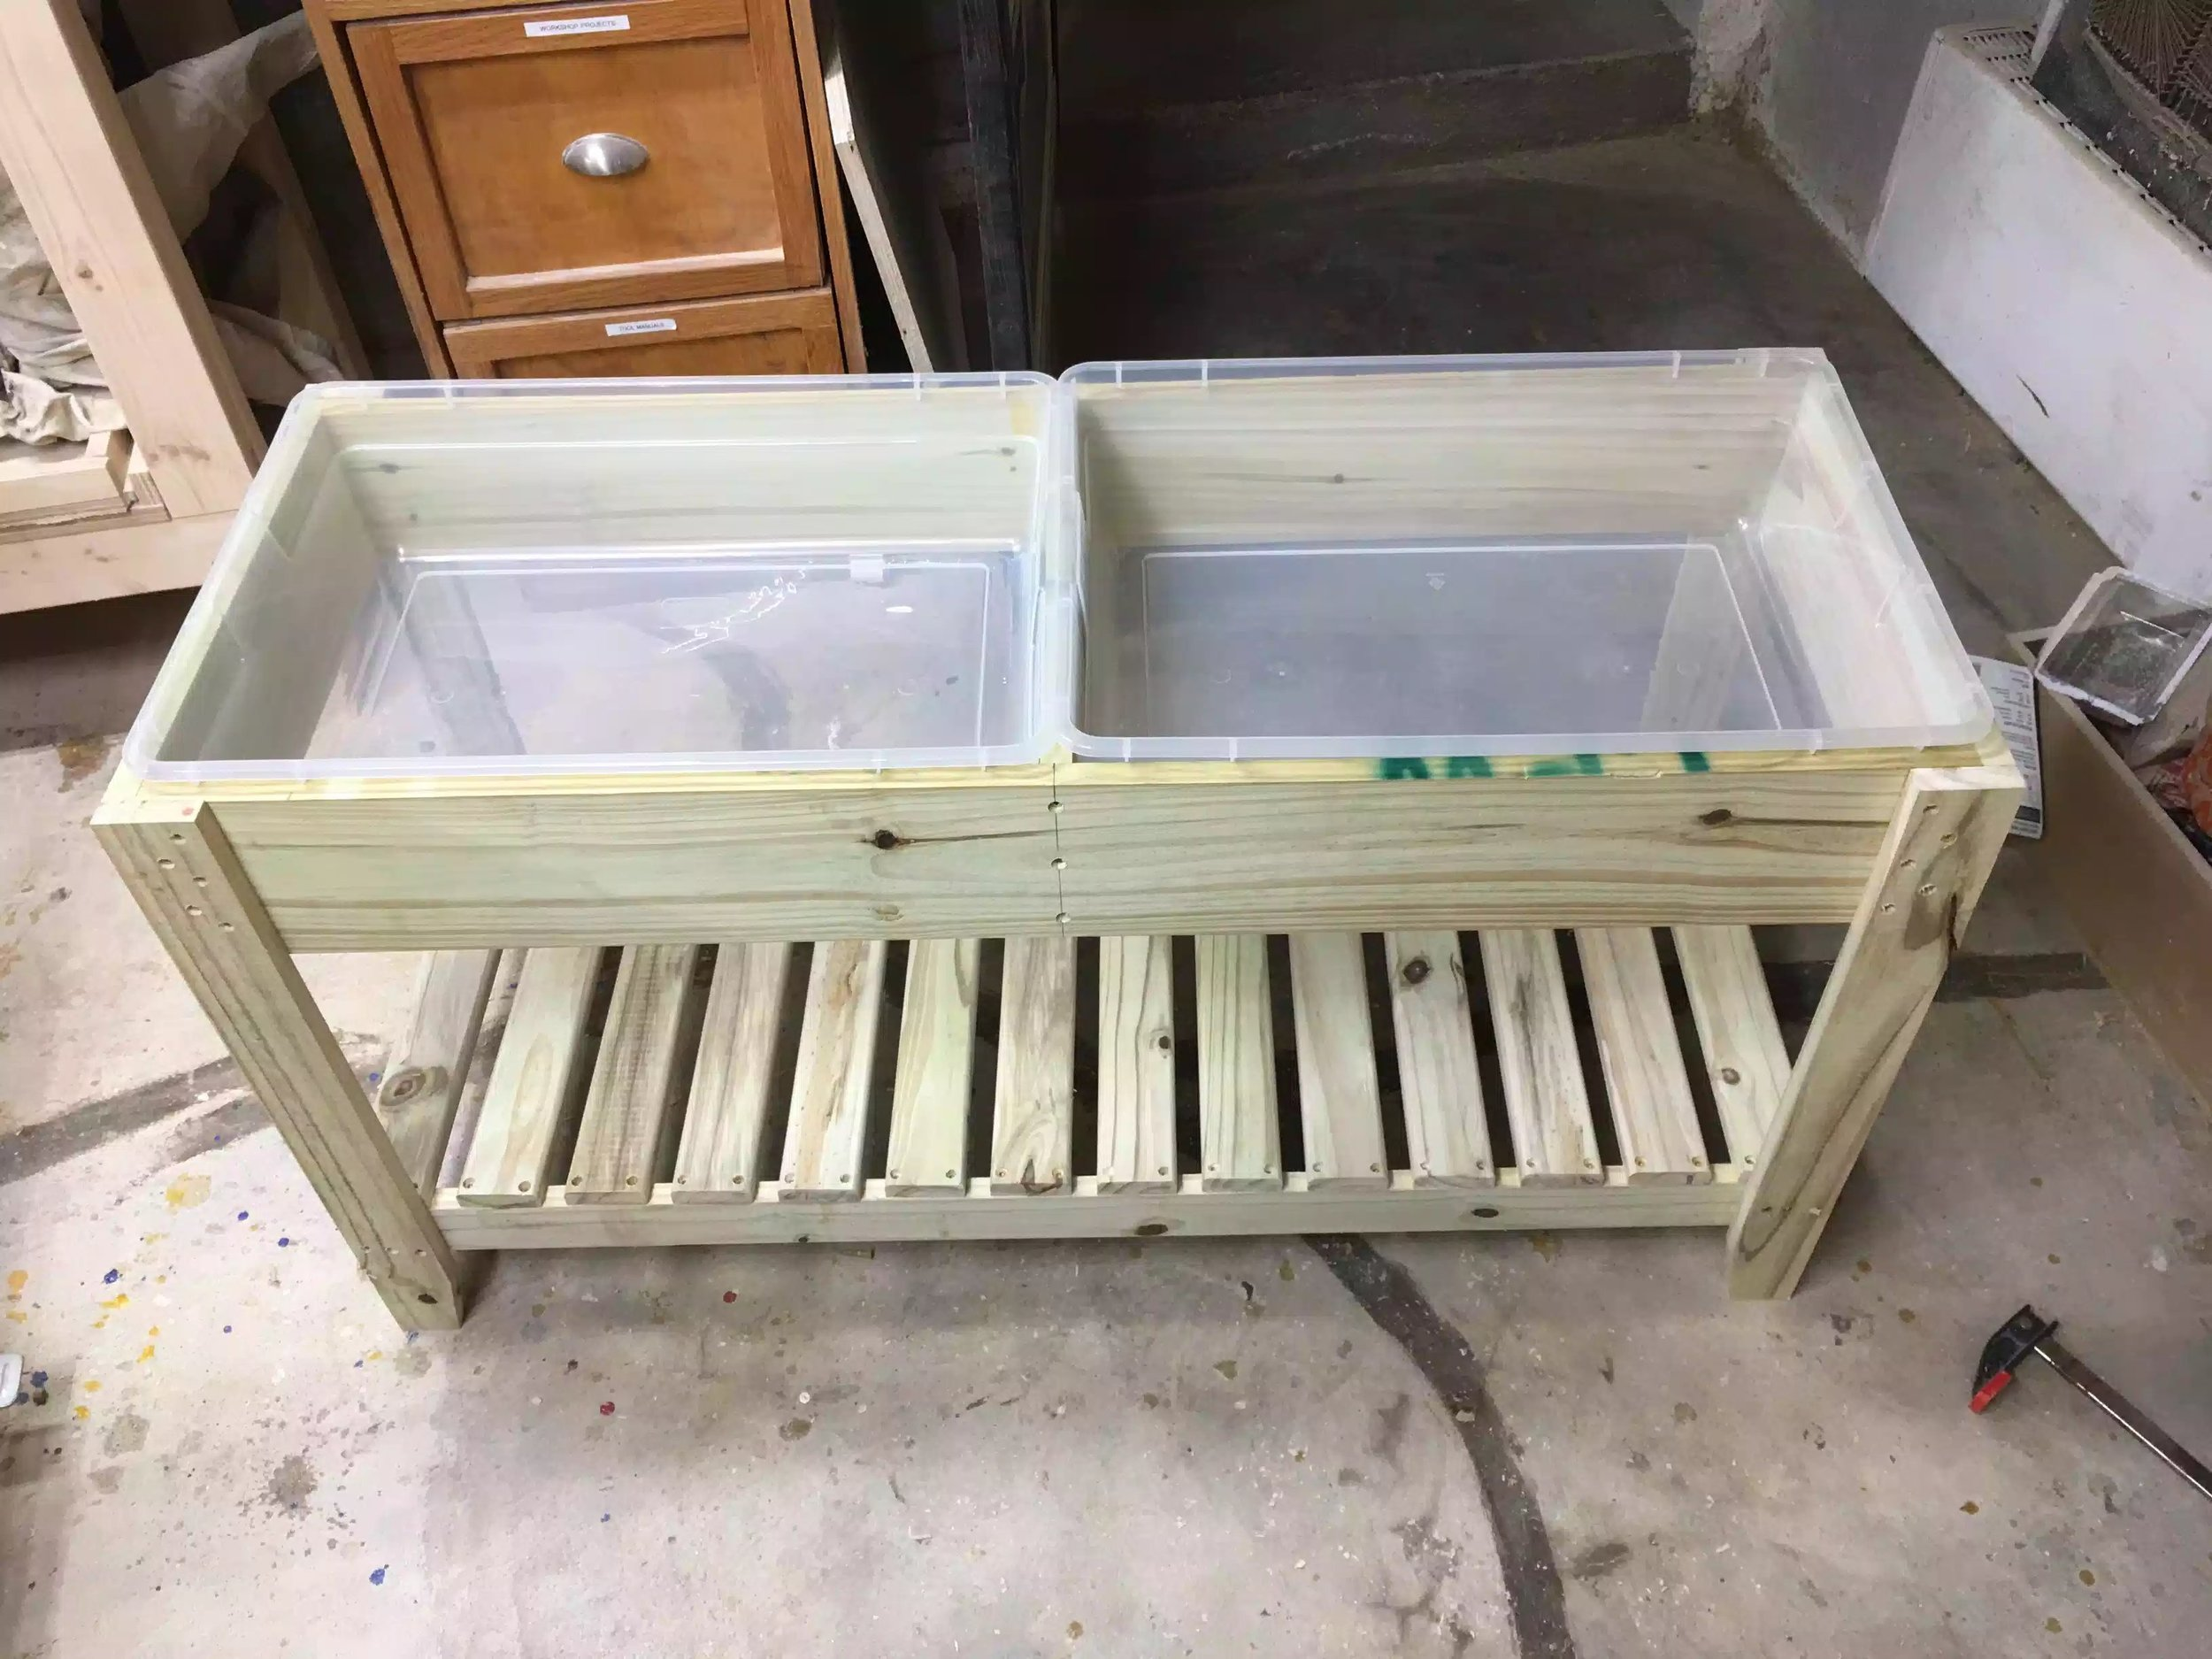 You can see the containers that the water will go into, just a suggestion but I might adjust the dimensions of the table by a little and possibly use a thicker piece of wood for the divider because I can not get the lids on the containers easily as they bump into each other